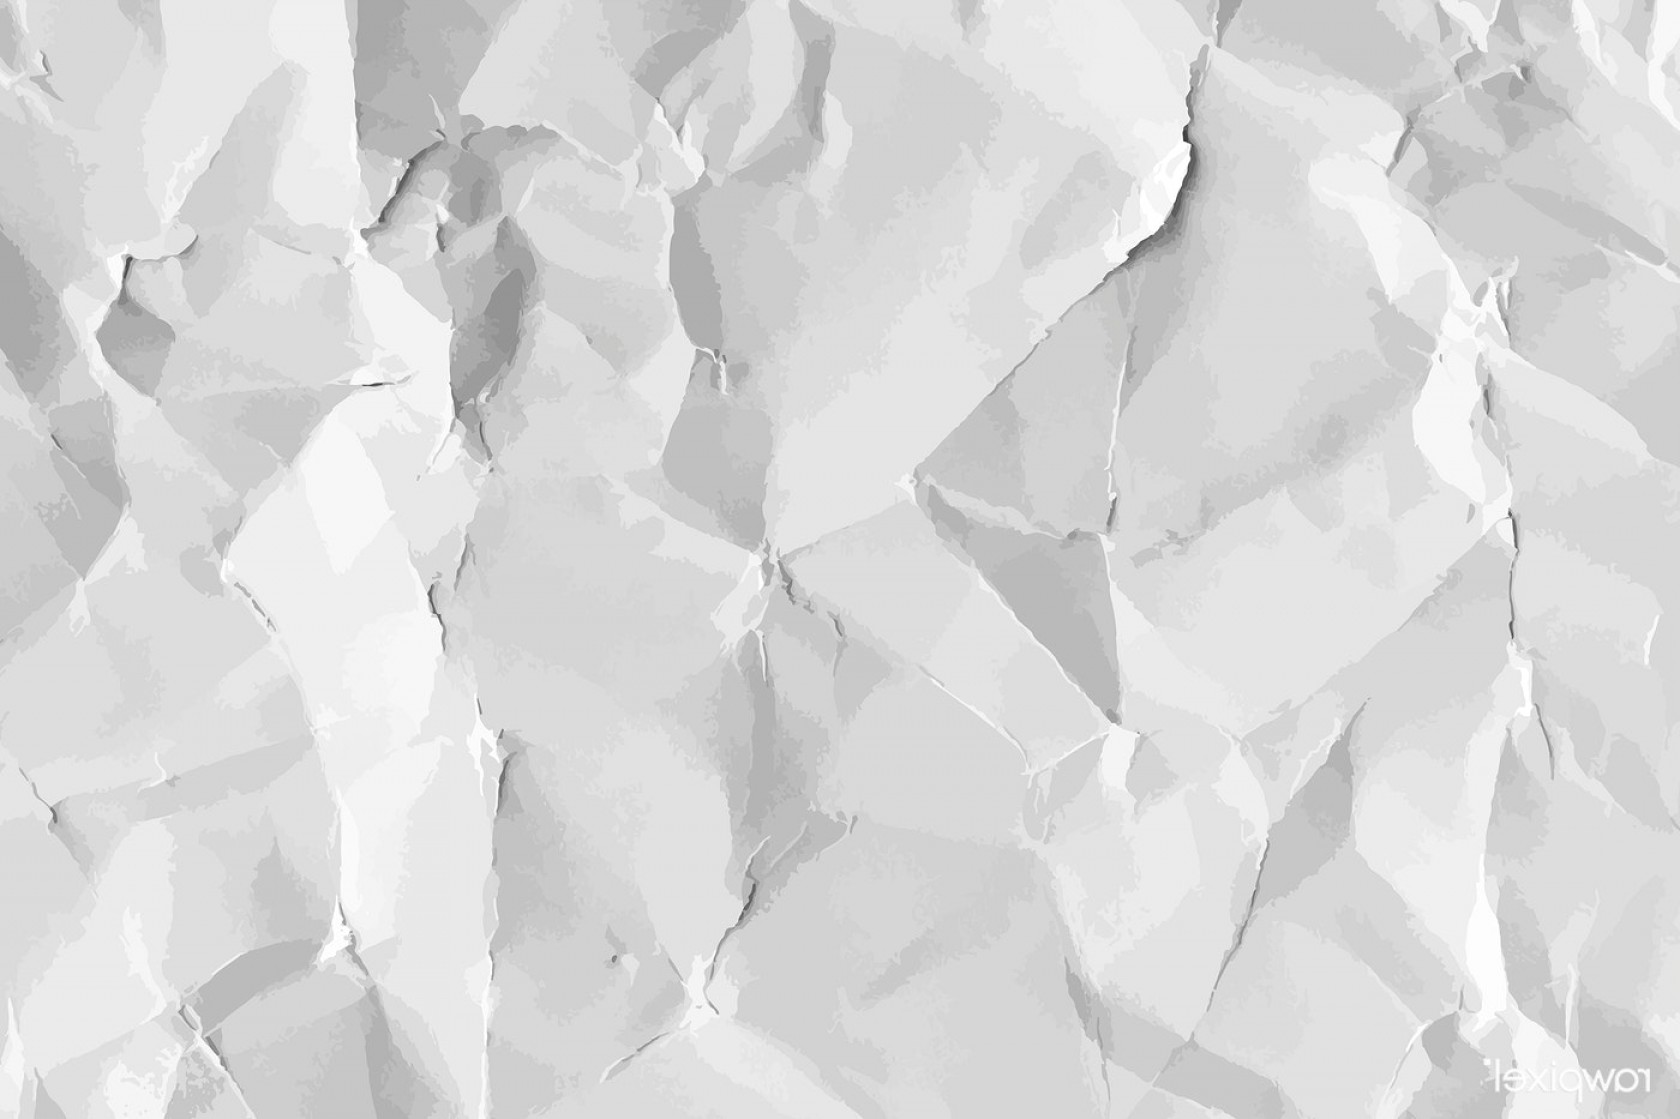 Crinkled Paper Vector: Free Illustration Image Abstract Art Background